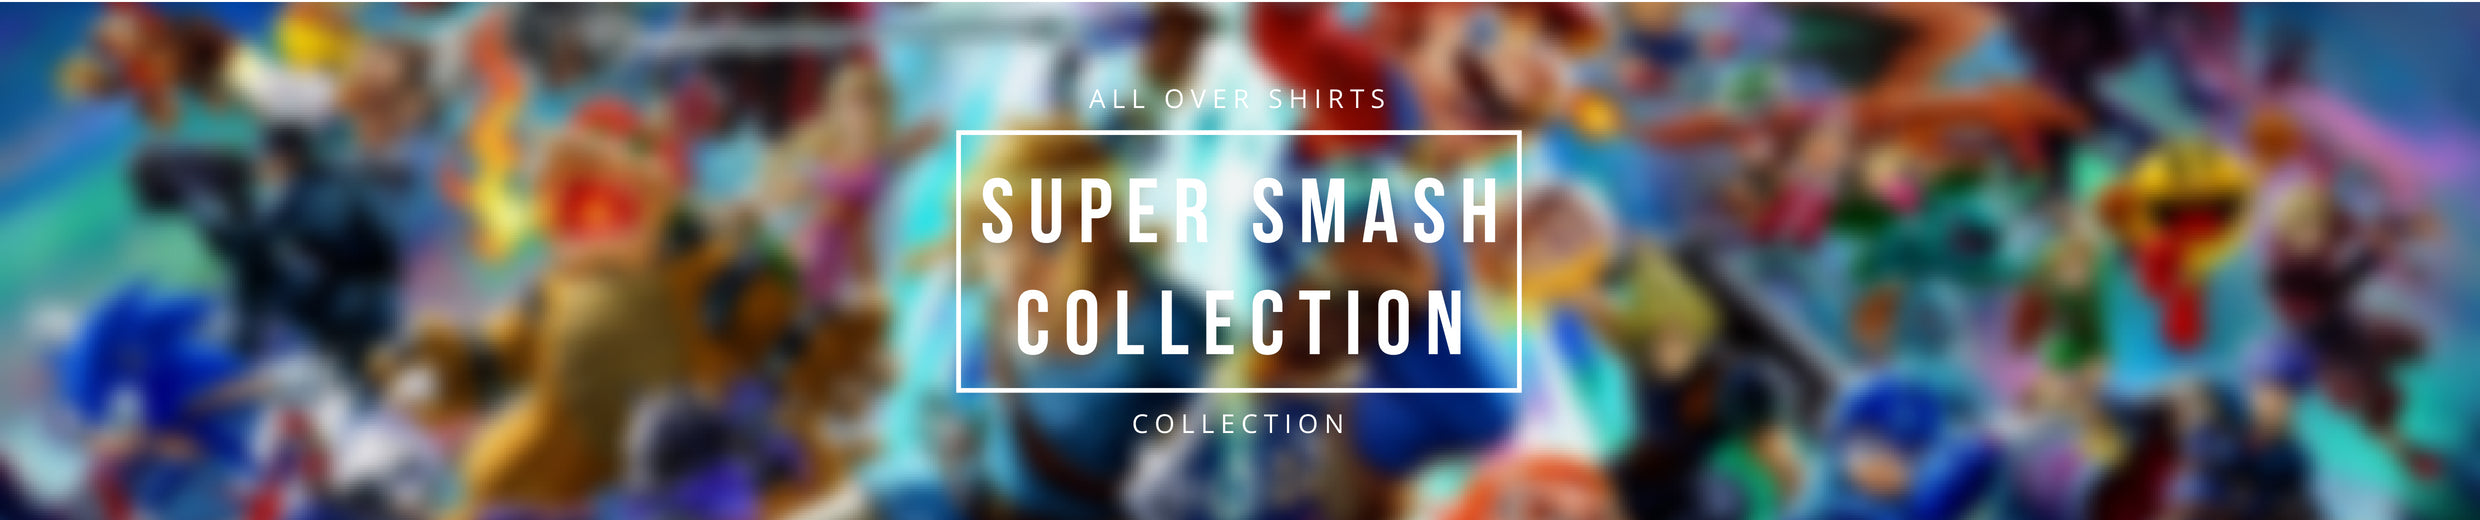 Super Smash Collection Banner